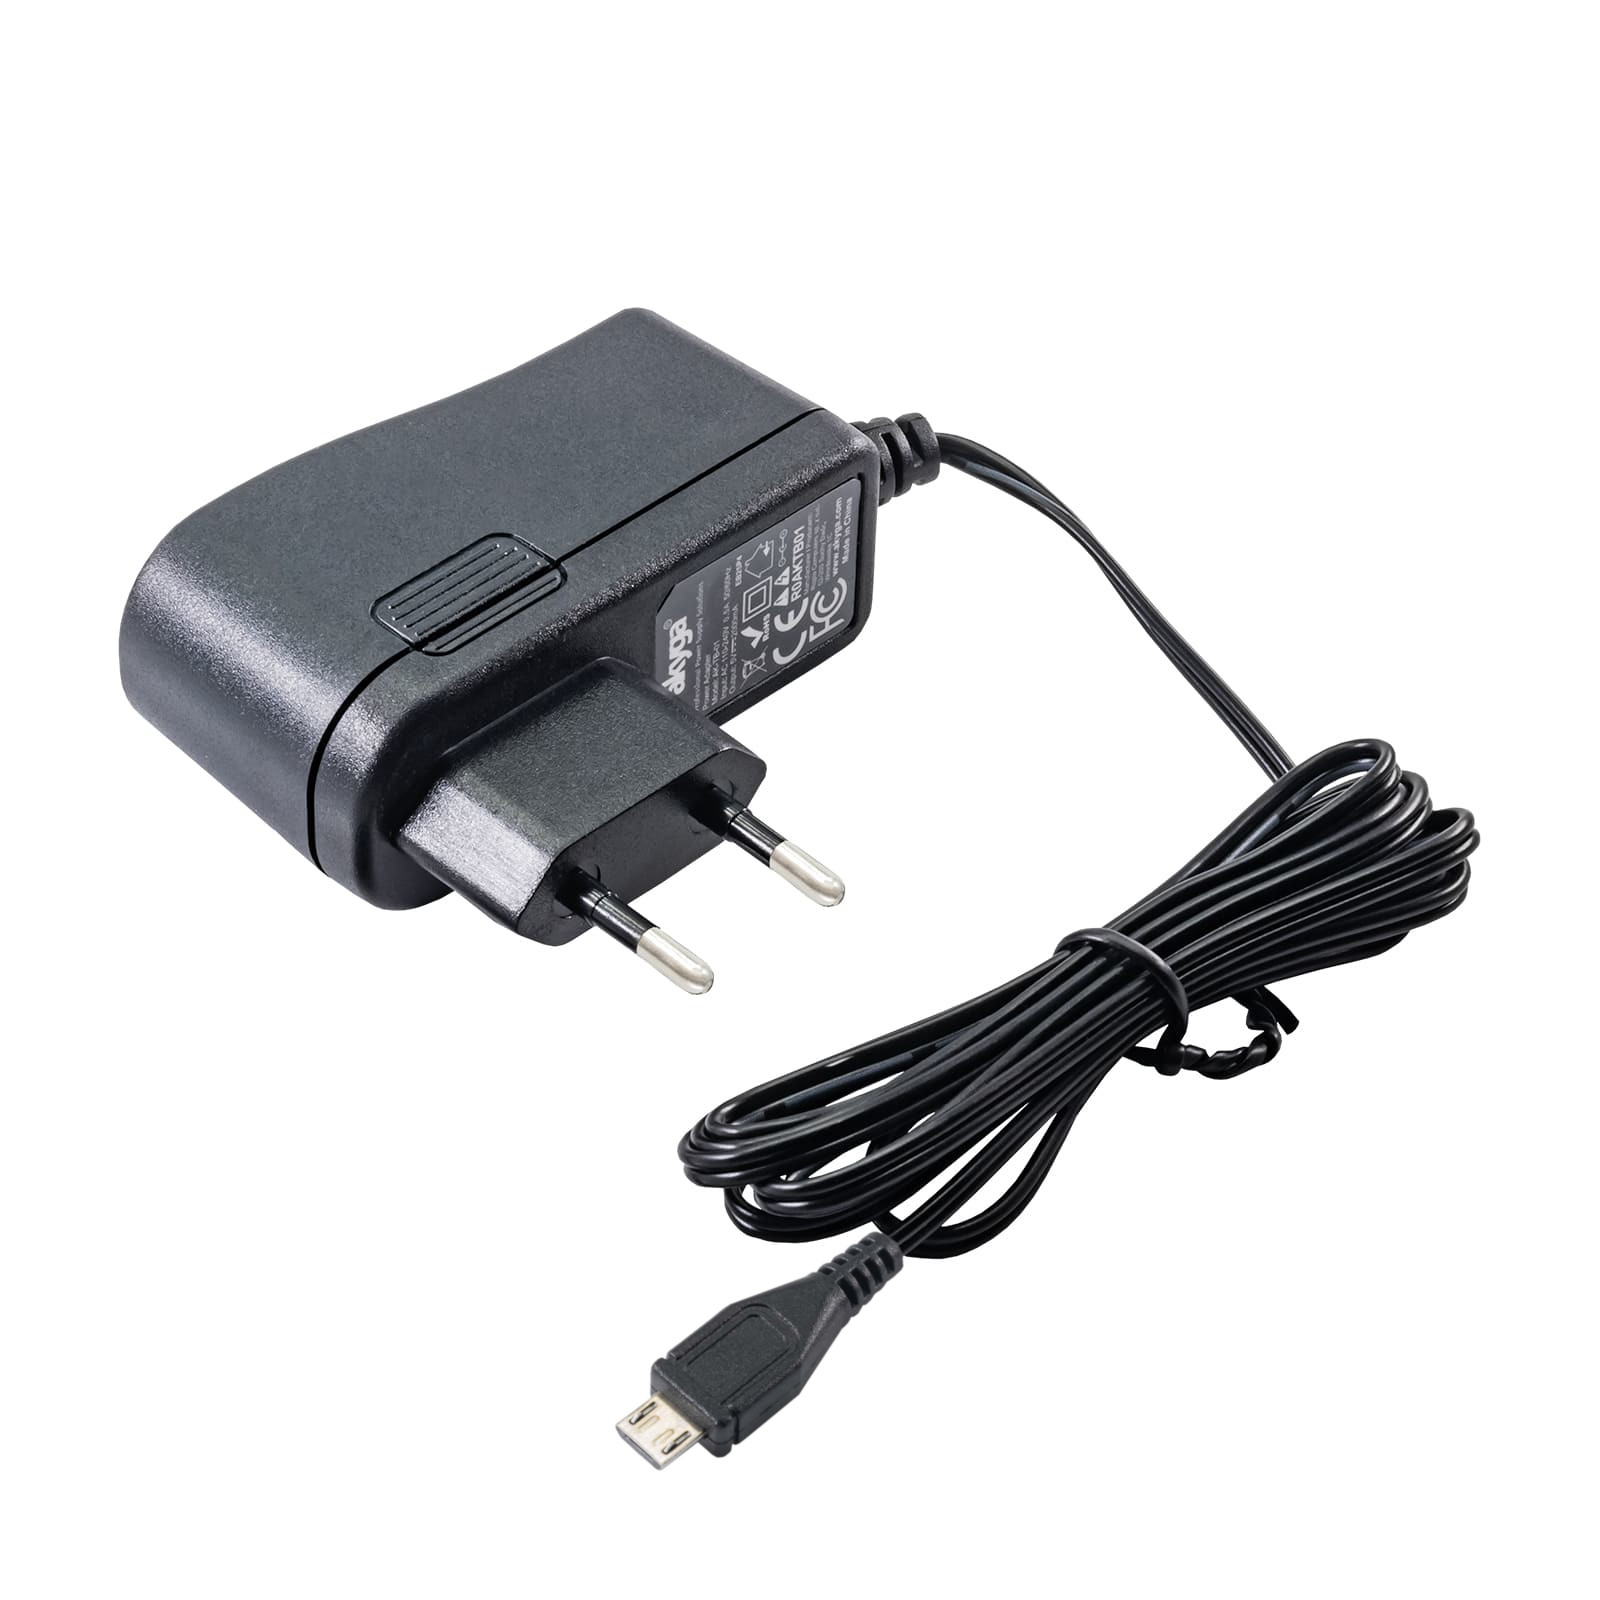 Main image Power Supply AK-TB-03 5V / 2A 10W micro USB